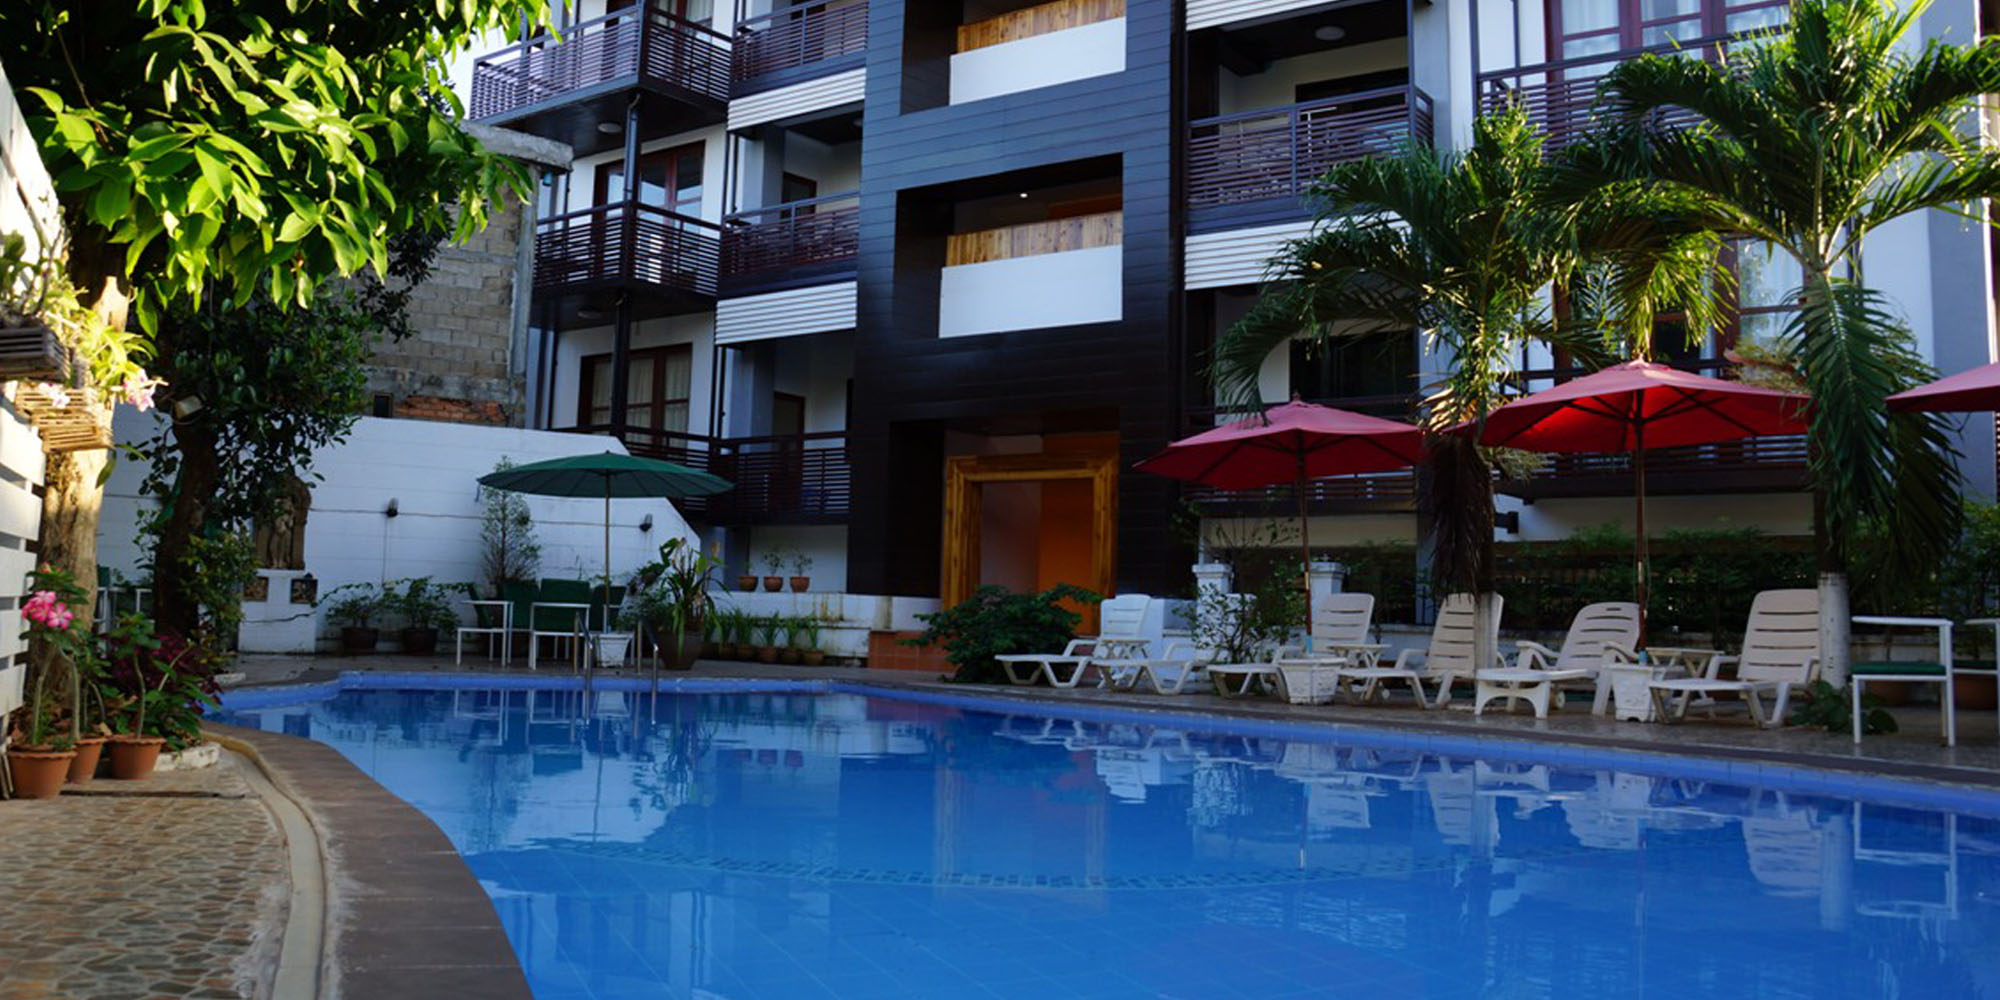 Luxury Apartment near That Luang Temple